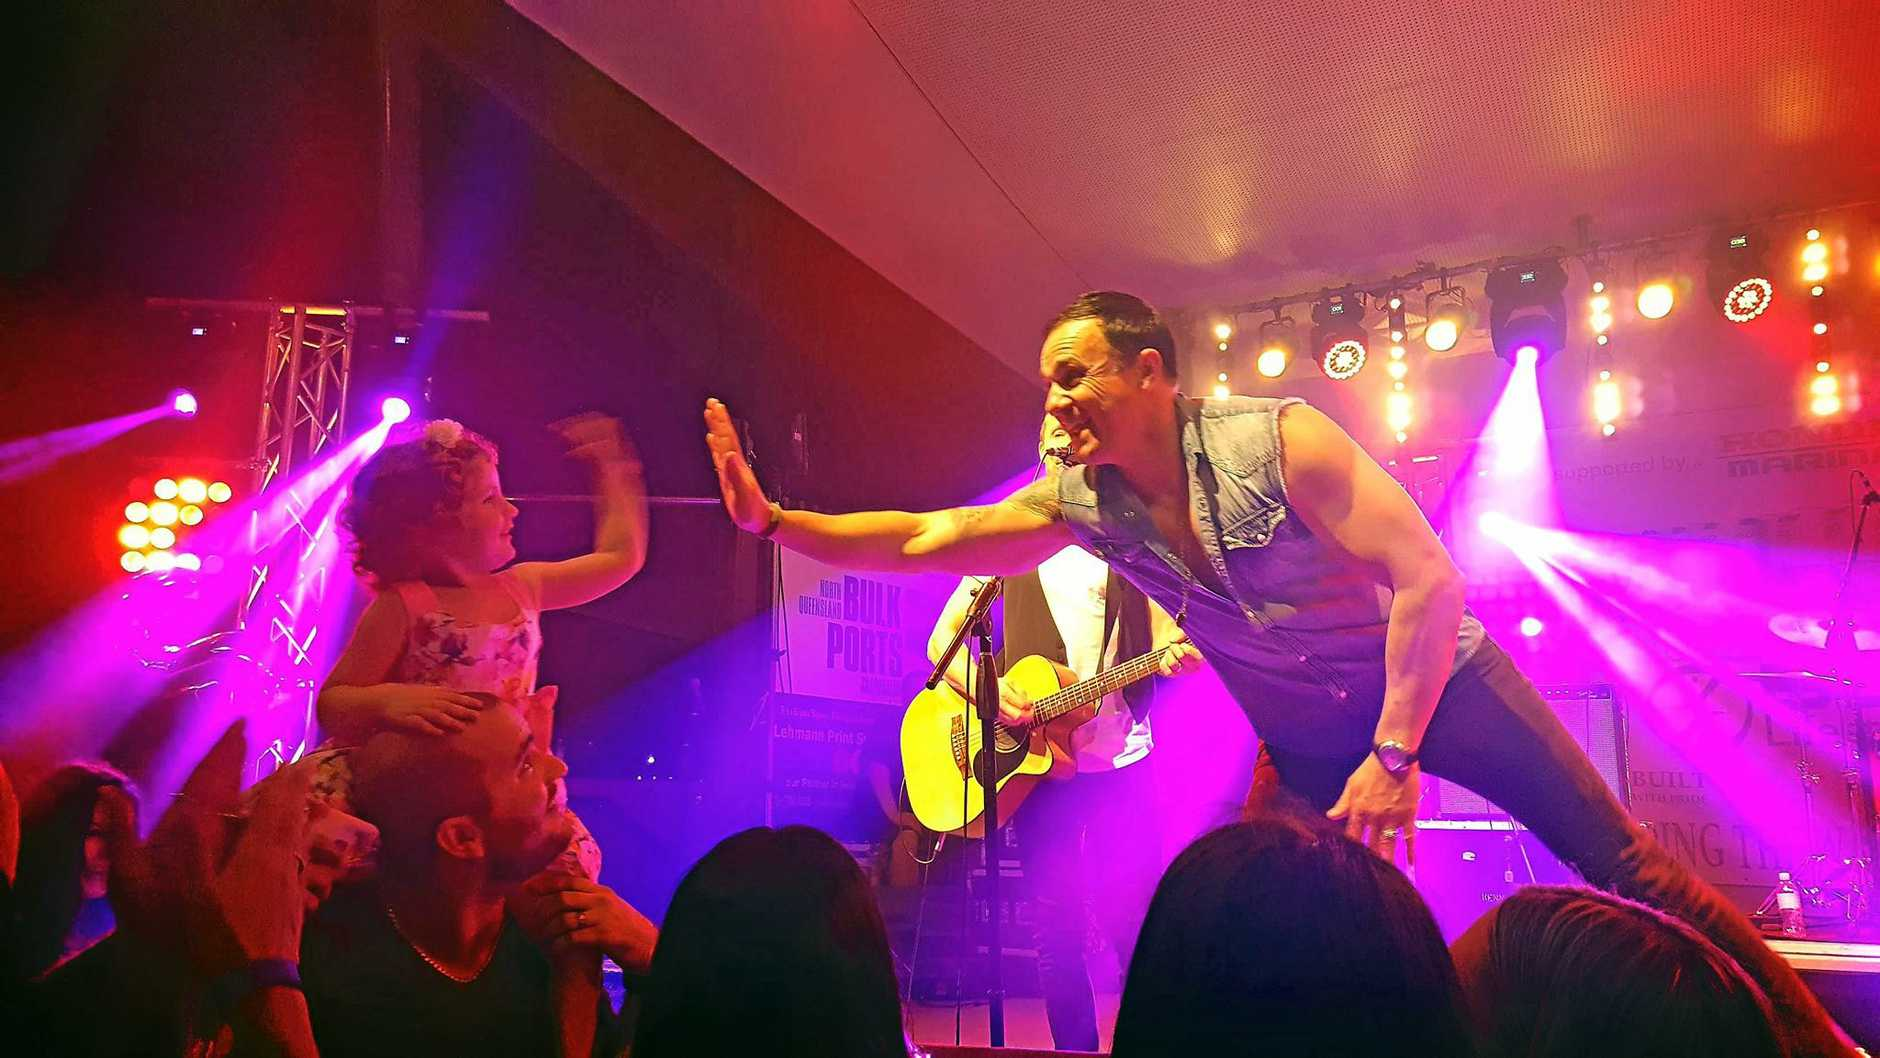 Three-year-old Lilli Carus gives Shannon Noll a high five during his performance at the Bowen Fishing Classic, September 17, 2016.